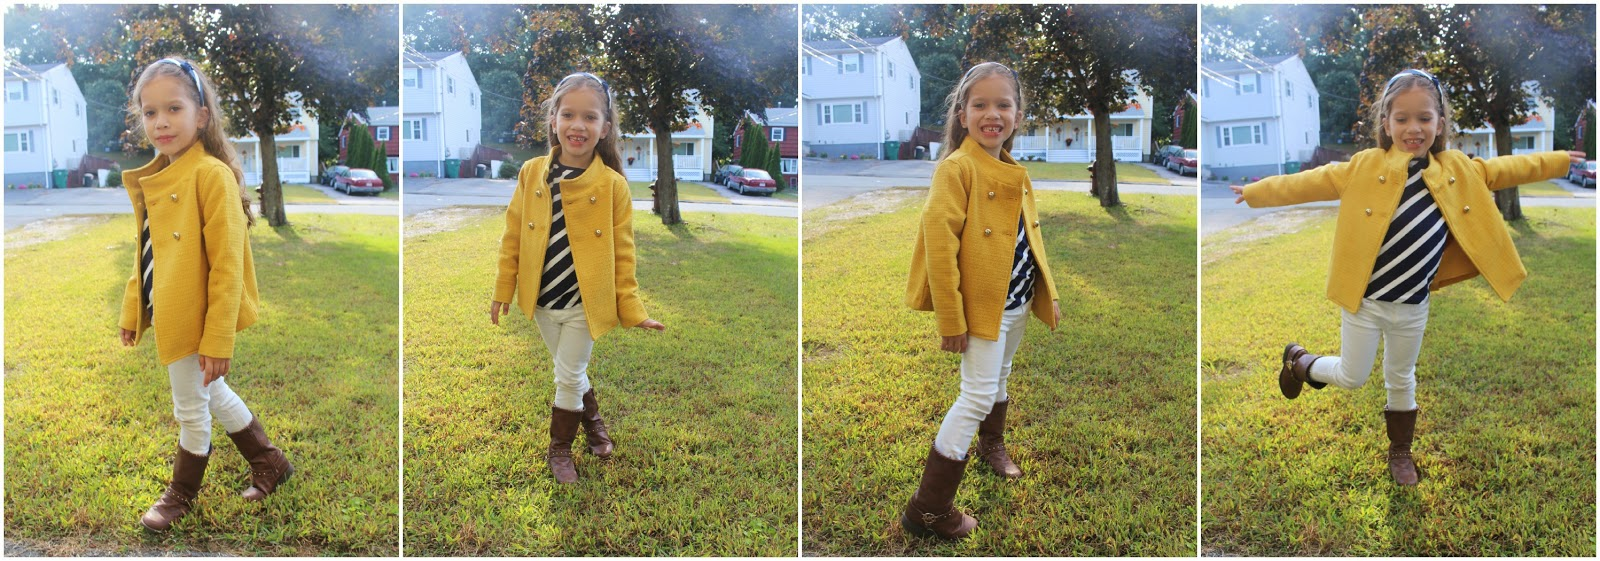 Gymboree Little Girls Outfits Style Childrens fashion Back To School